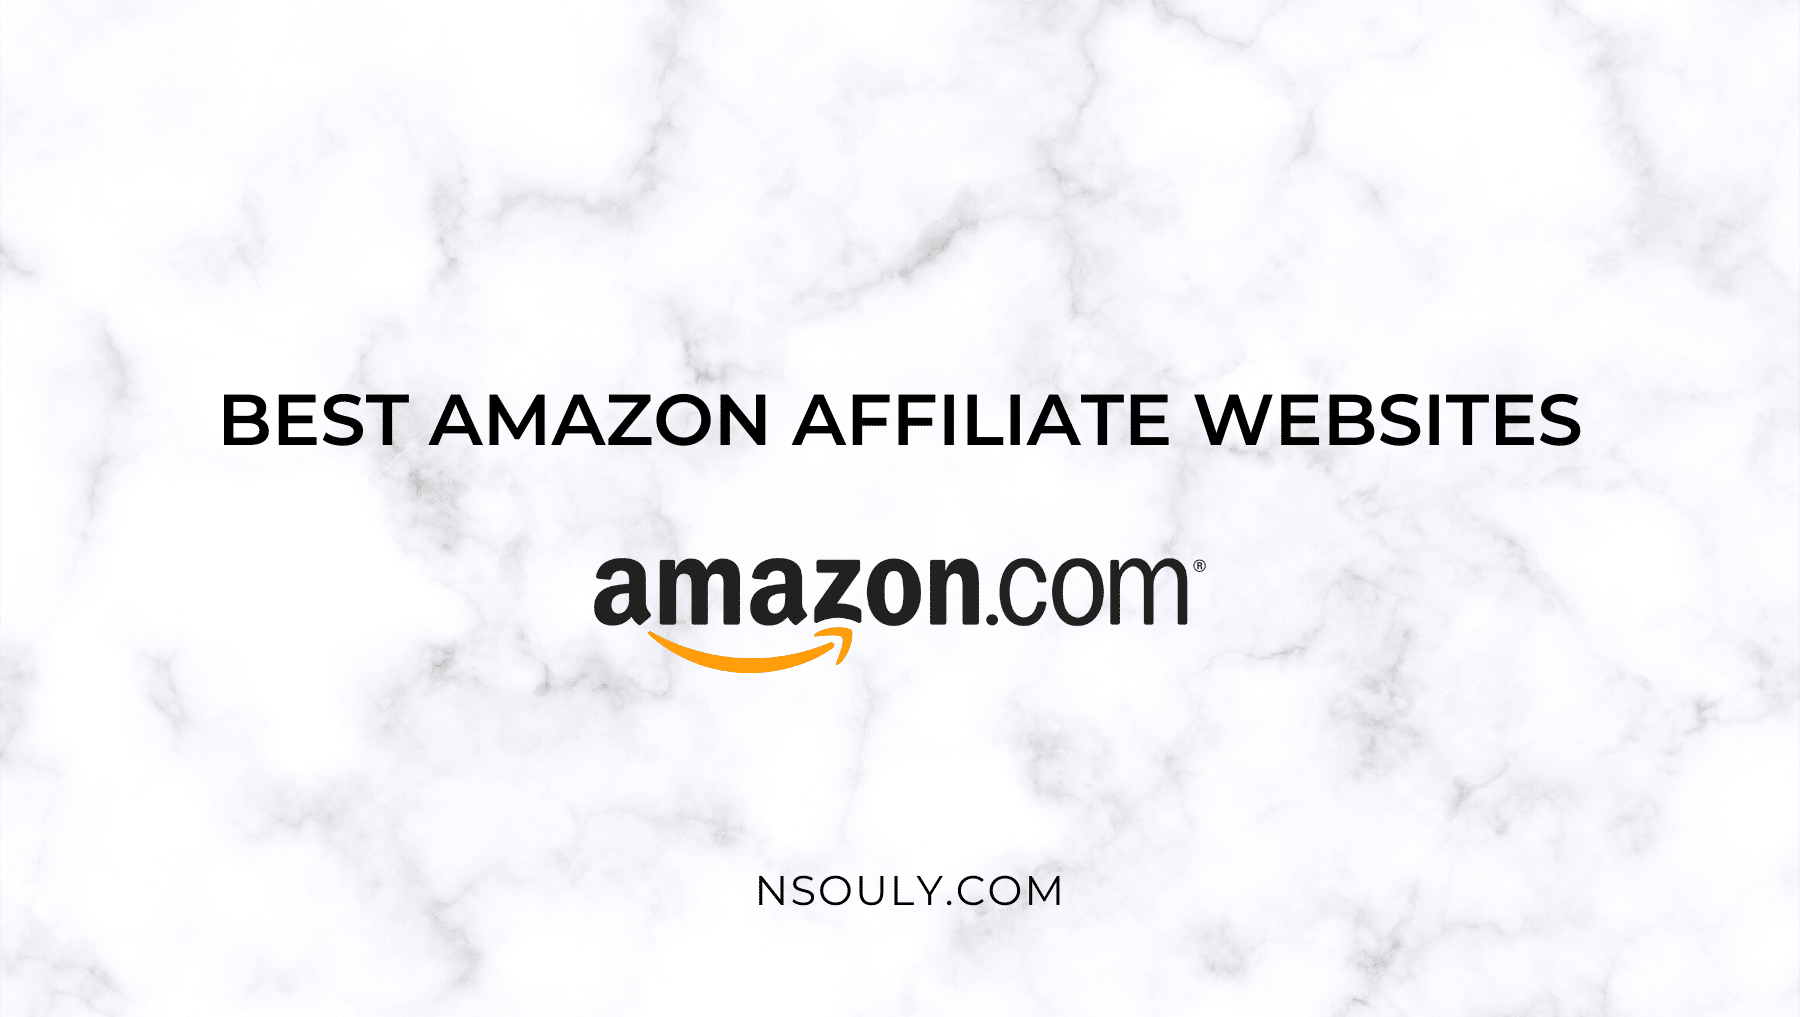 The Best Amazon Affiliate Websites and Their Incredible Strategies